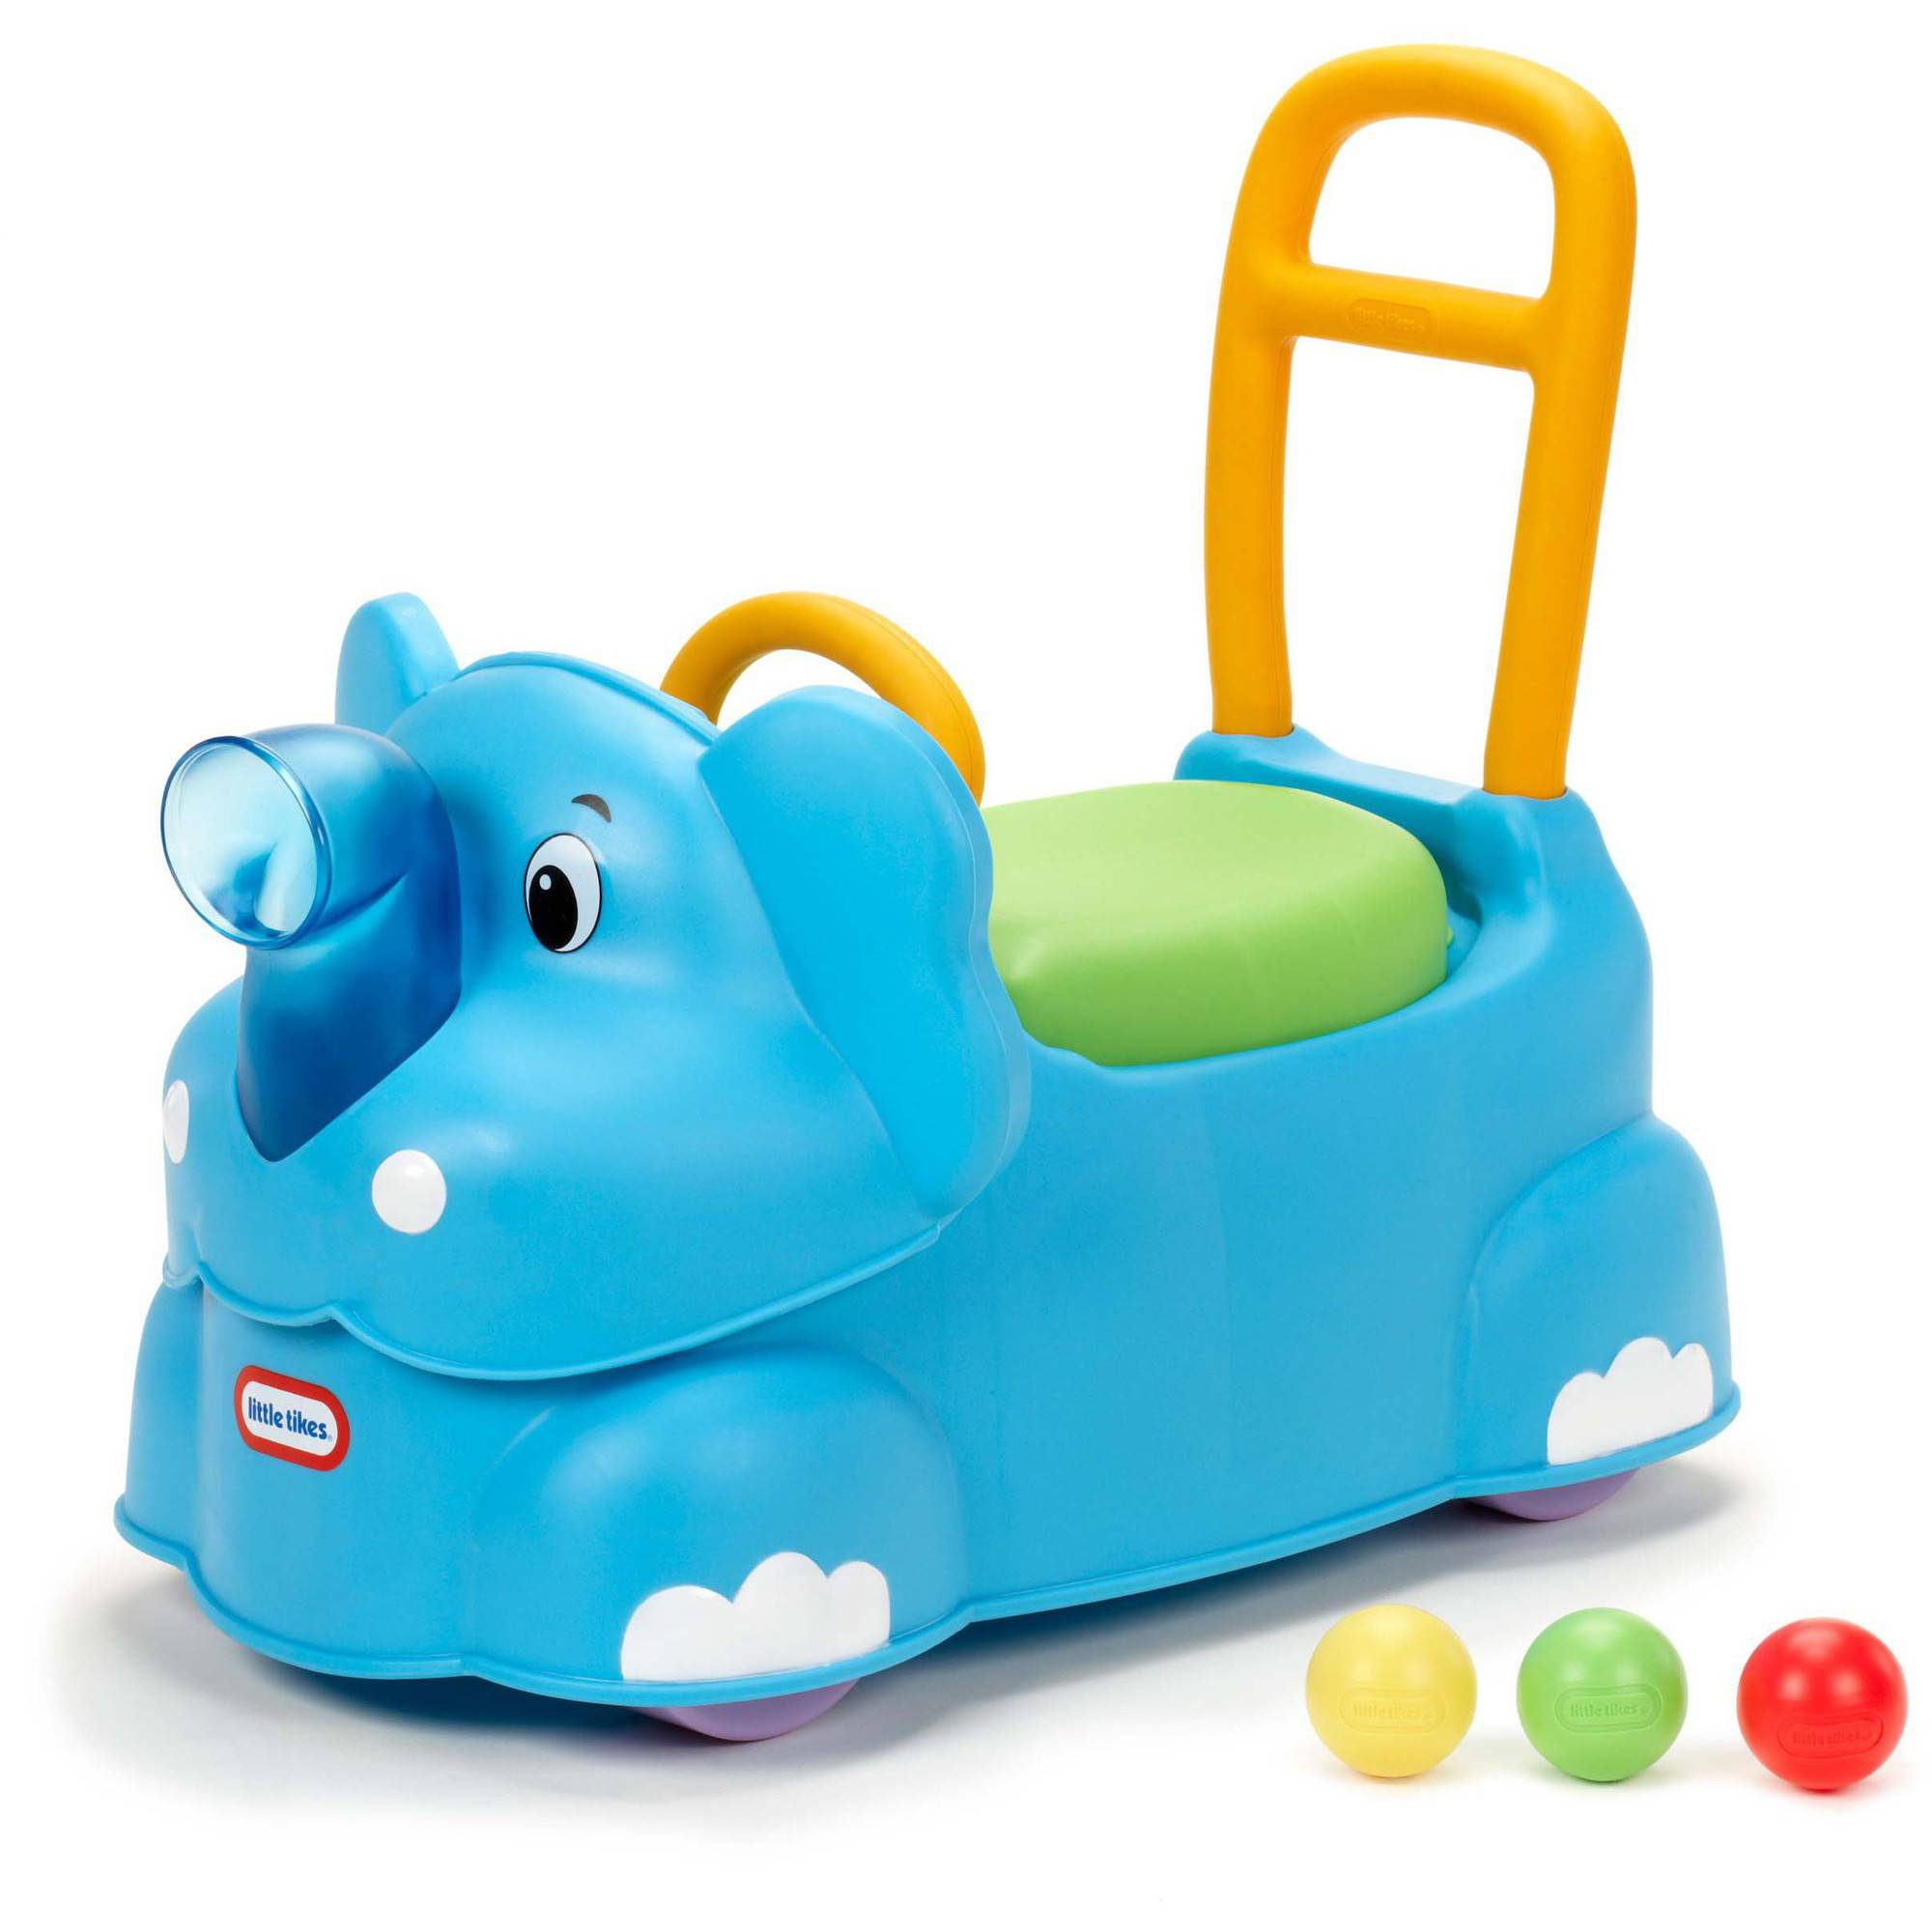 Little Tikes Scoot Around Elephant Riding Push Toy - Walmart.com